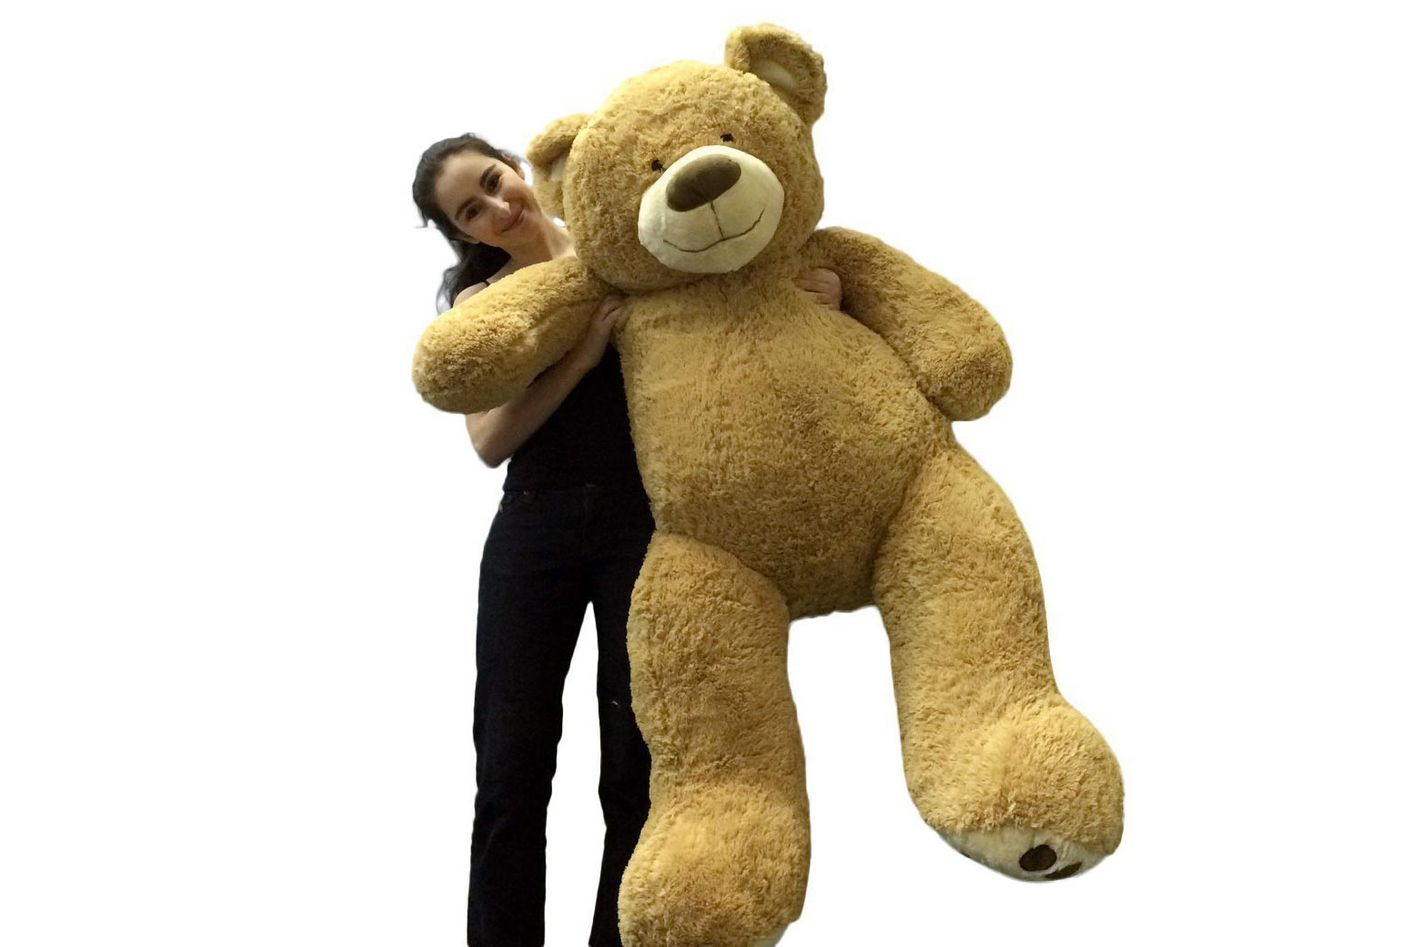 Big Plush Personalized Giant 60u201d Teddy Bear